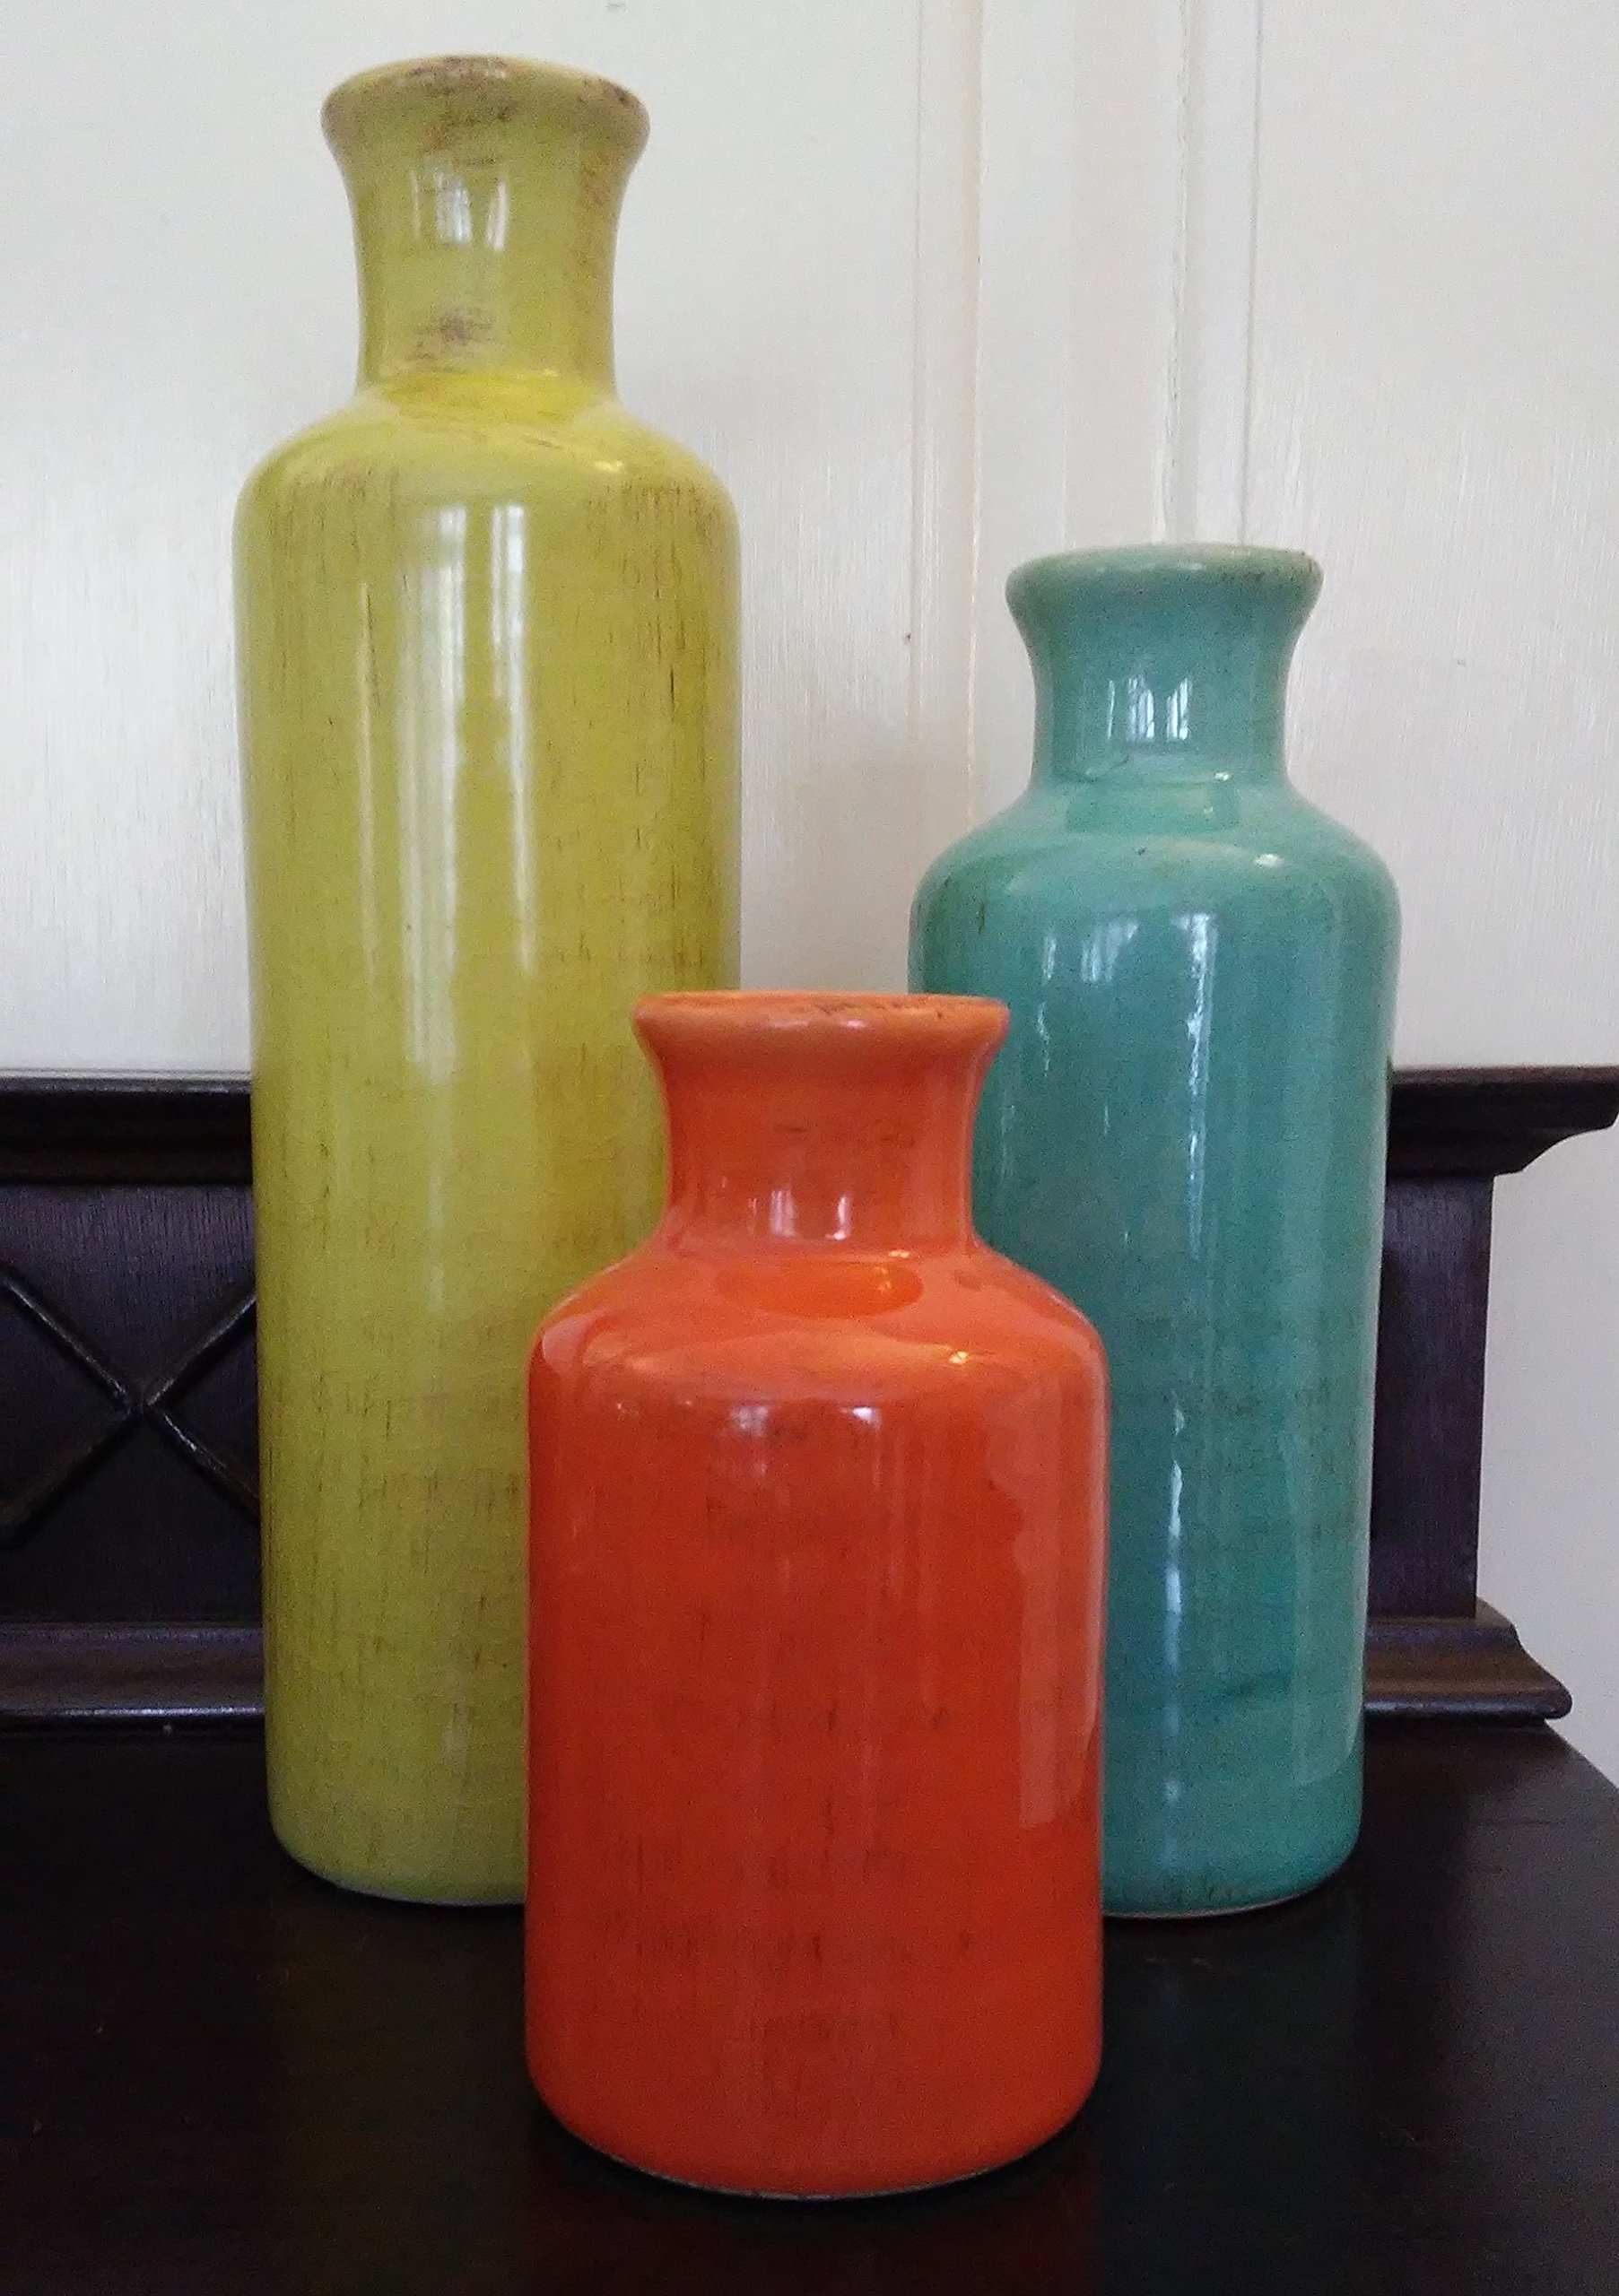 "Sullivans Small Ceramic Vase Set, Rustic Home Décor, Set of 3 Vases, Multi-Color (CM2334) - 3 Petite Distressed Bright Yellow, Blue and Orange Vases - Goes with Many Different Types of Decor Works with Fresh or Faux Flowers & Greenery - Waterproof Dimensions: 3""L x 3""W x 5""H, 3""L x 3""W x 7. 5""H, 3""L x 3""W x 10""H - vases, kitchen-dining-room-decor, kitchen-dining-room - 91E2zD0LXzL -"